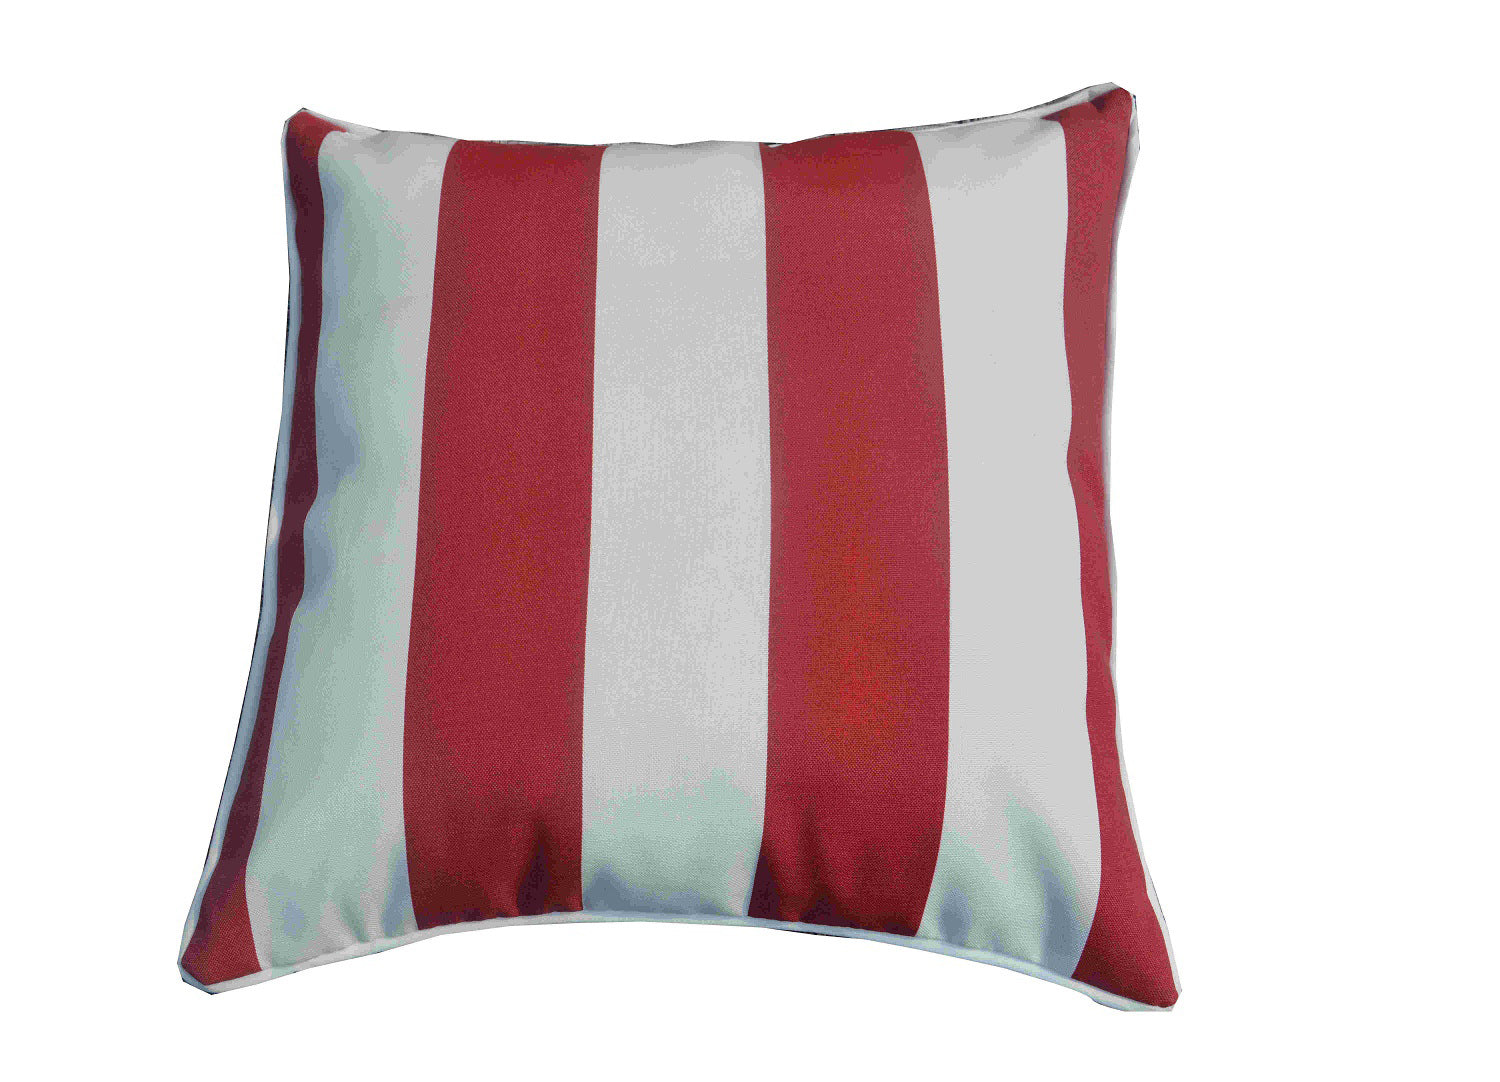 Outdoor Pillow in Dark Pink/White - Set of 2